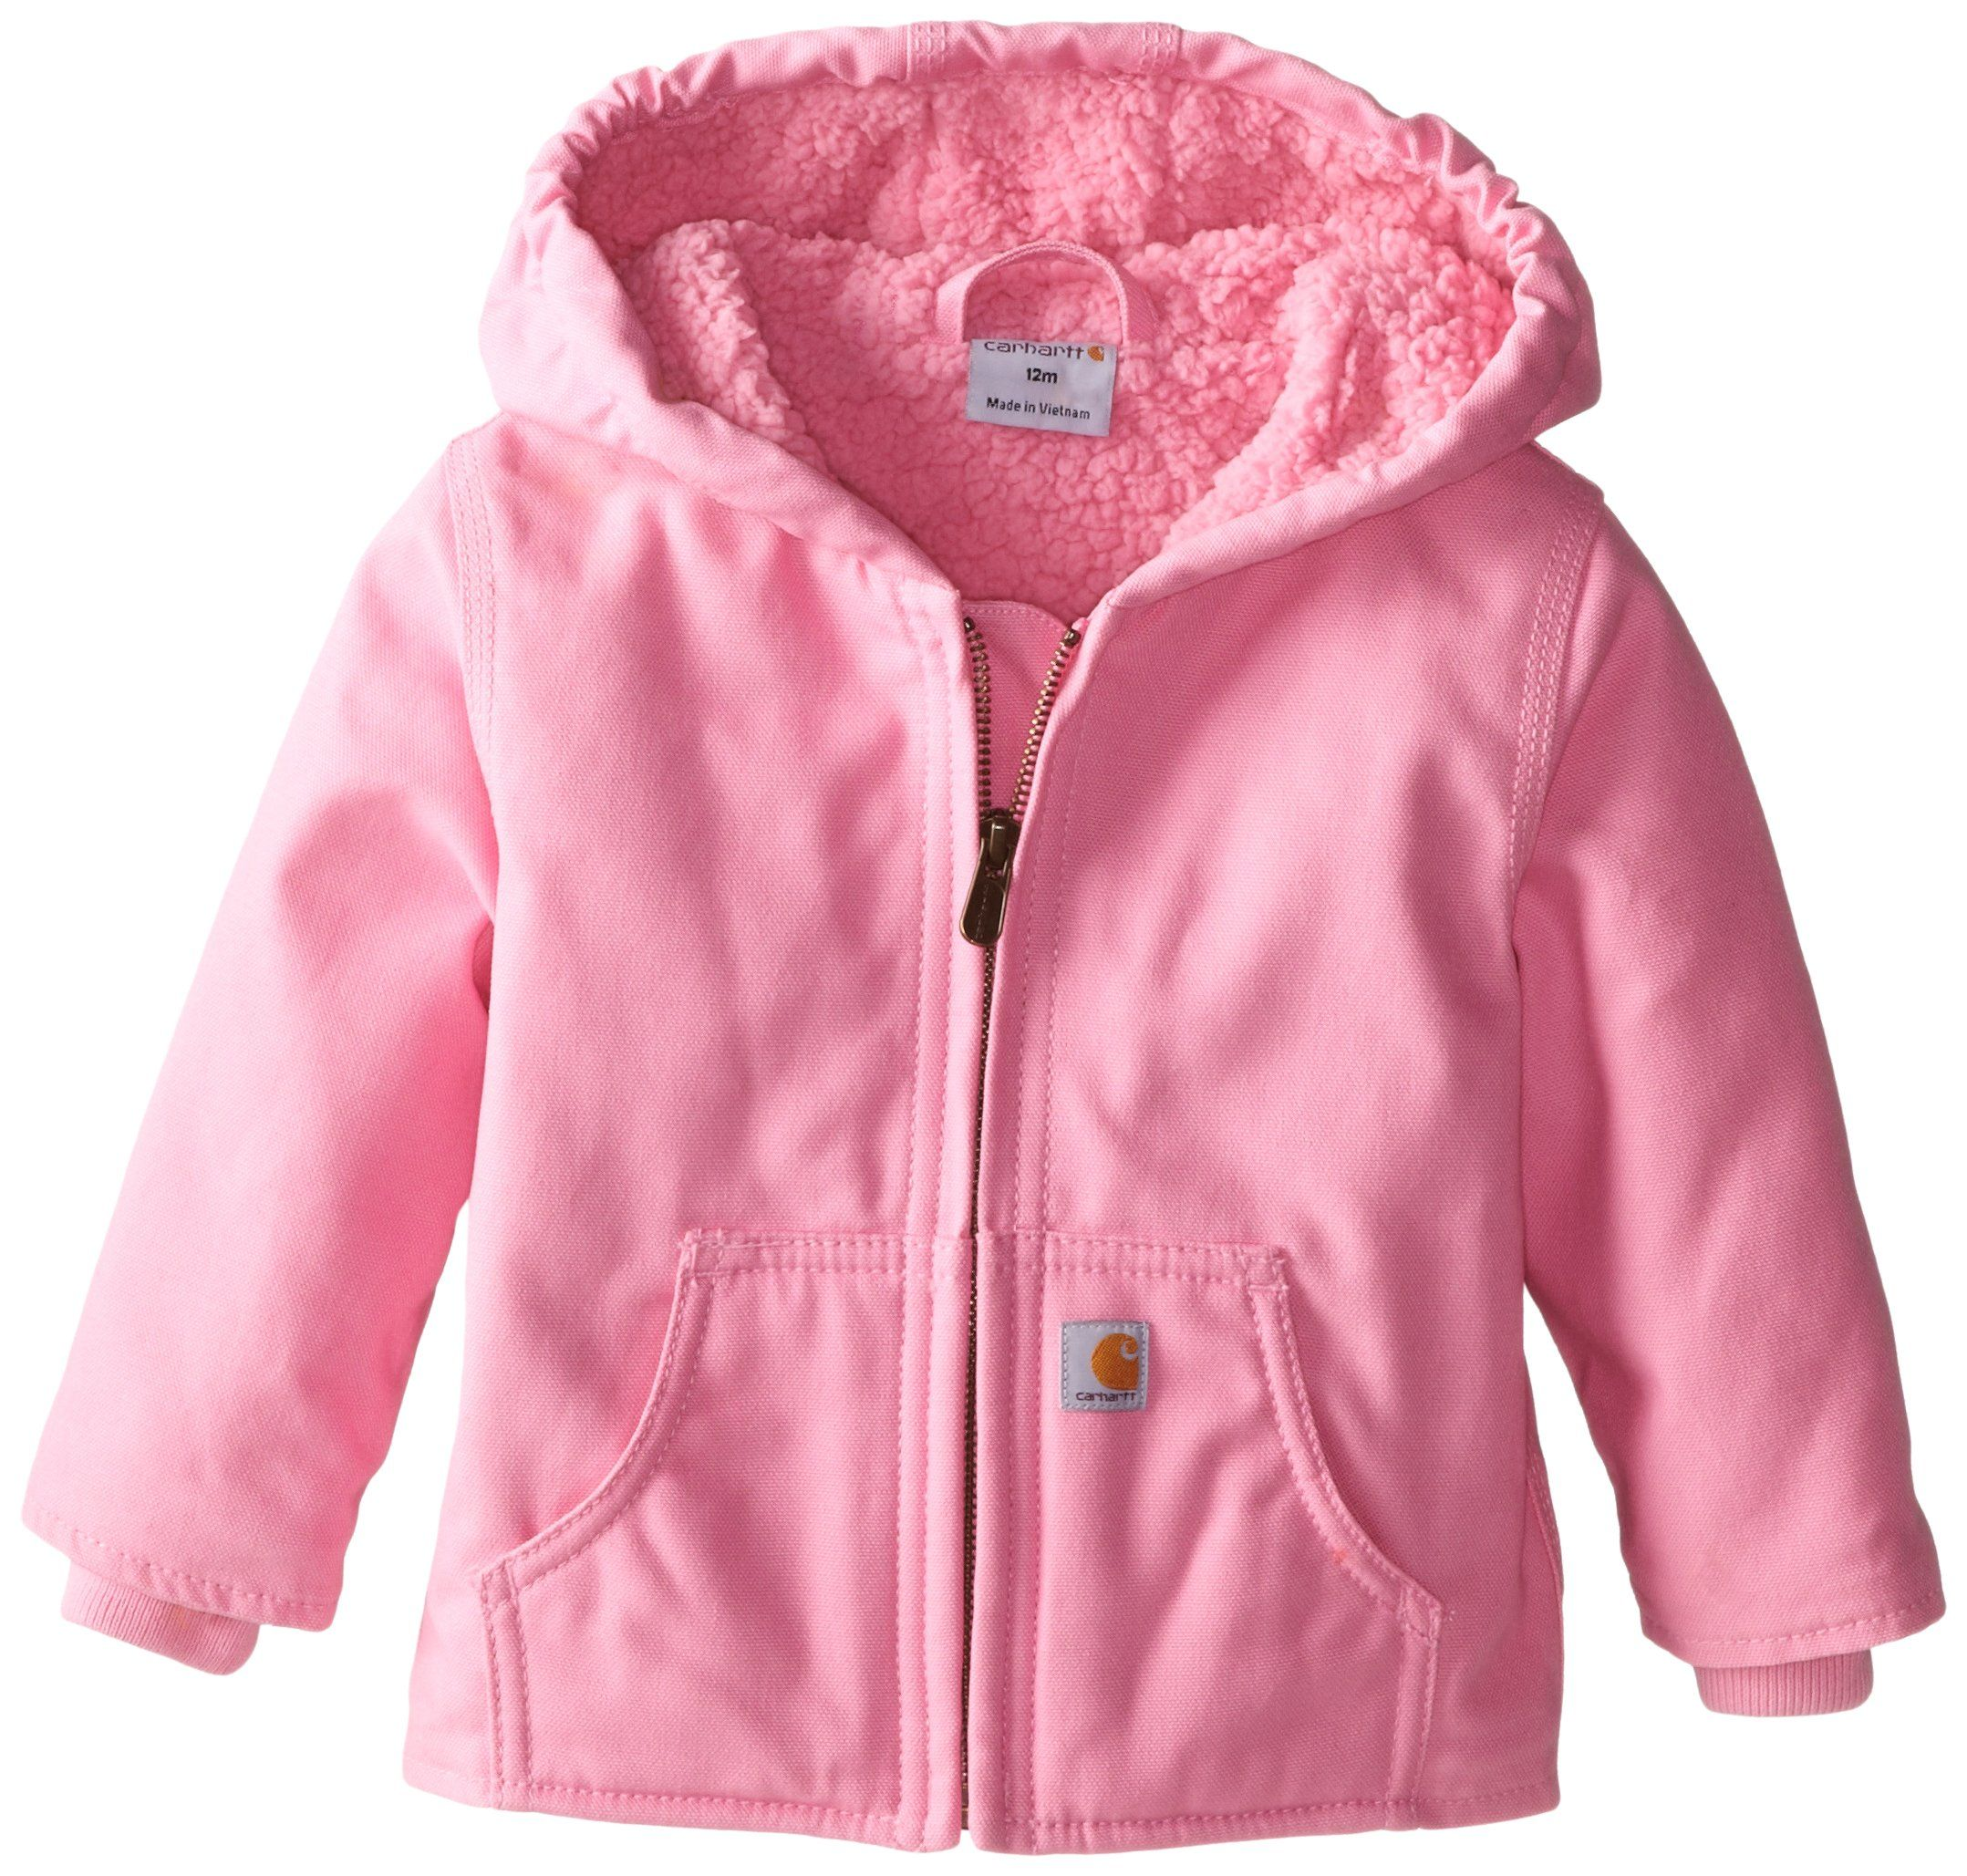 bb7f26887541 Carhartt Baby Girls  Redwood Jacket Sherpa Lined, Pink, 12 Months ...